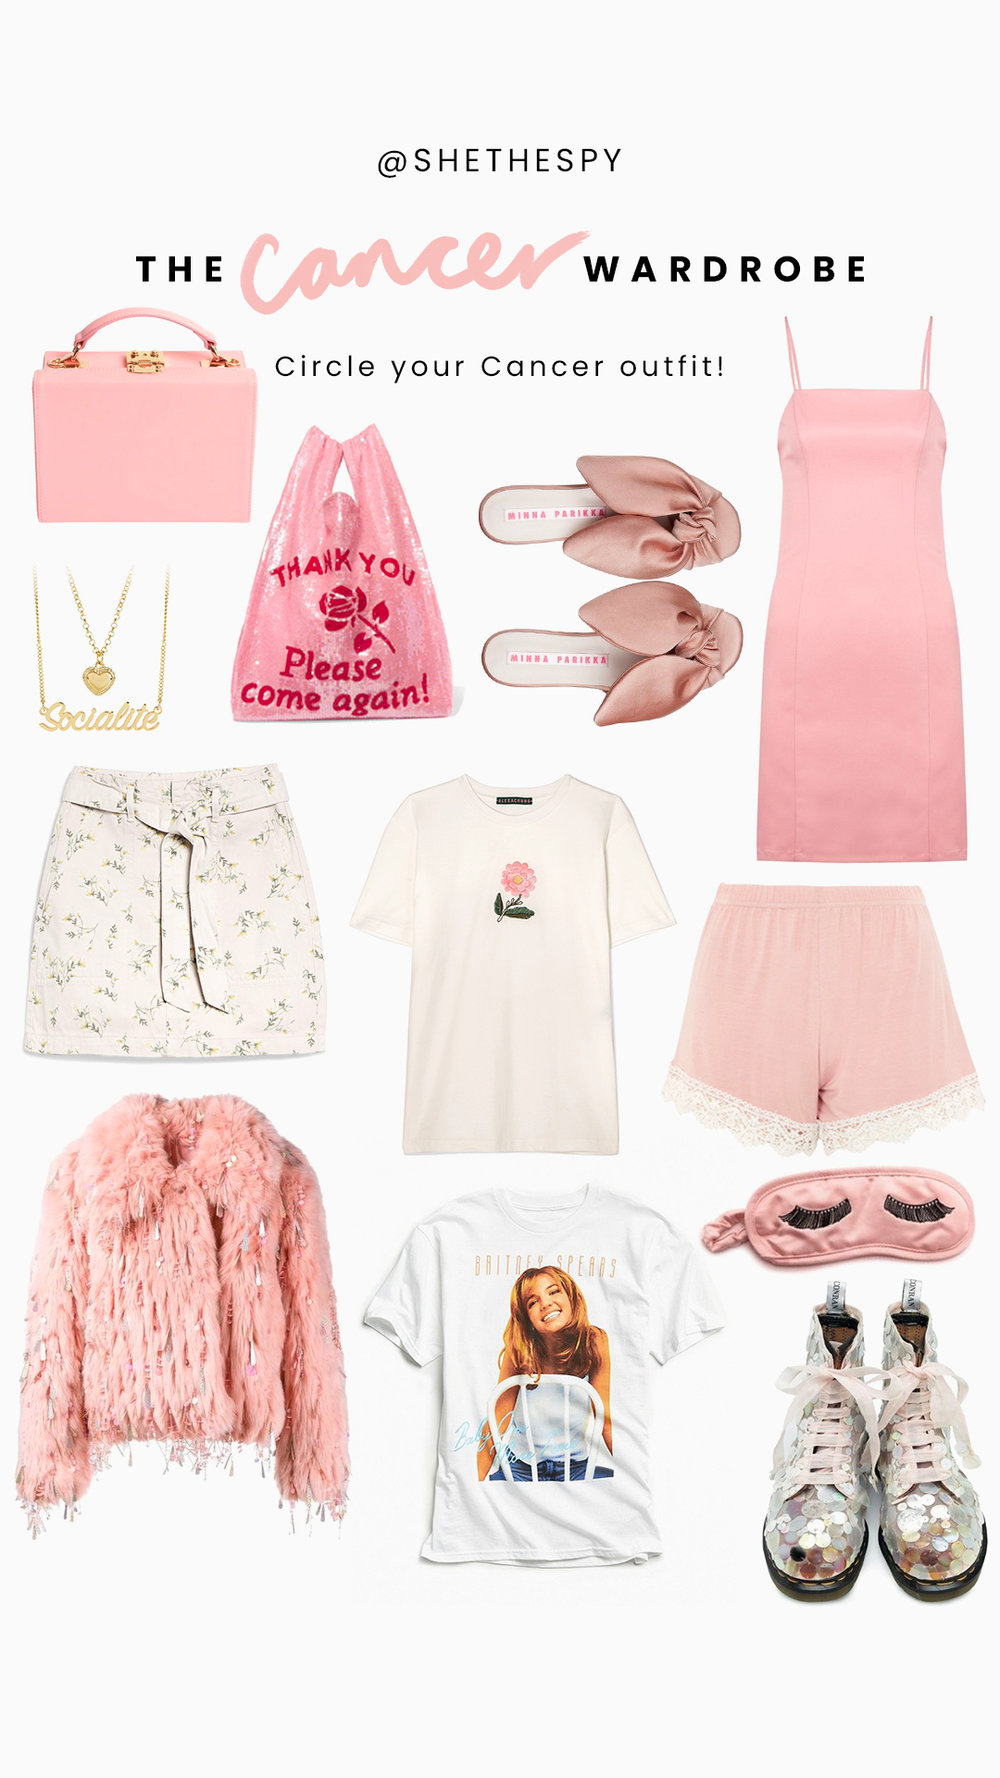 Shop Cancer - Bag: The Daily EditedShopping bag: AshishMules: Minna ParikkaDress: Skinny DipSkirt: TopshopNecklace: Skinny DipFlower tee: Alexa ChungShorts: TopshopEyemask: ShopbopJacket: UnknownBrittany tee: Urban OutfittersBoots: Unknown